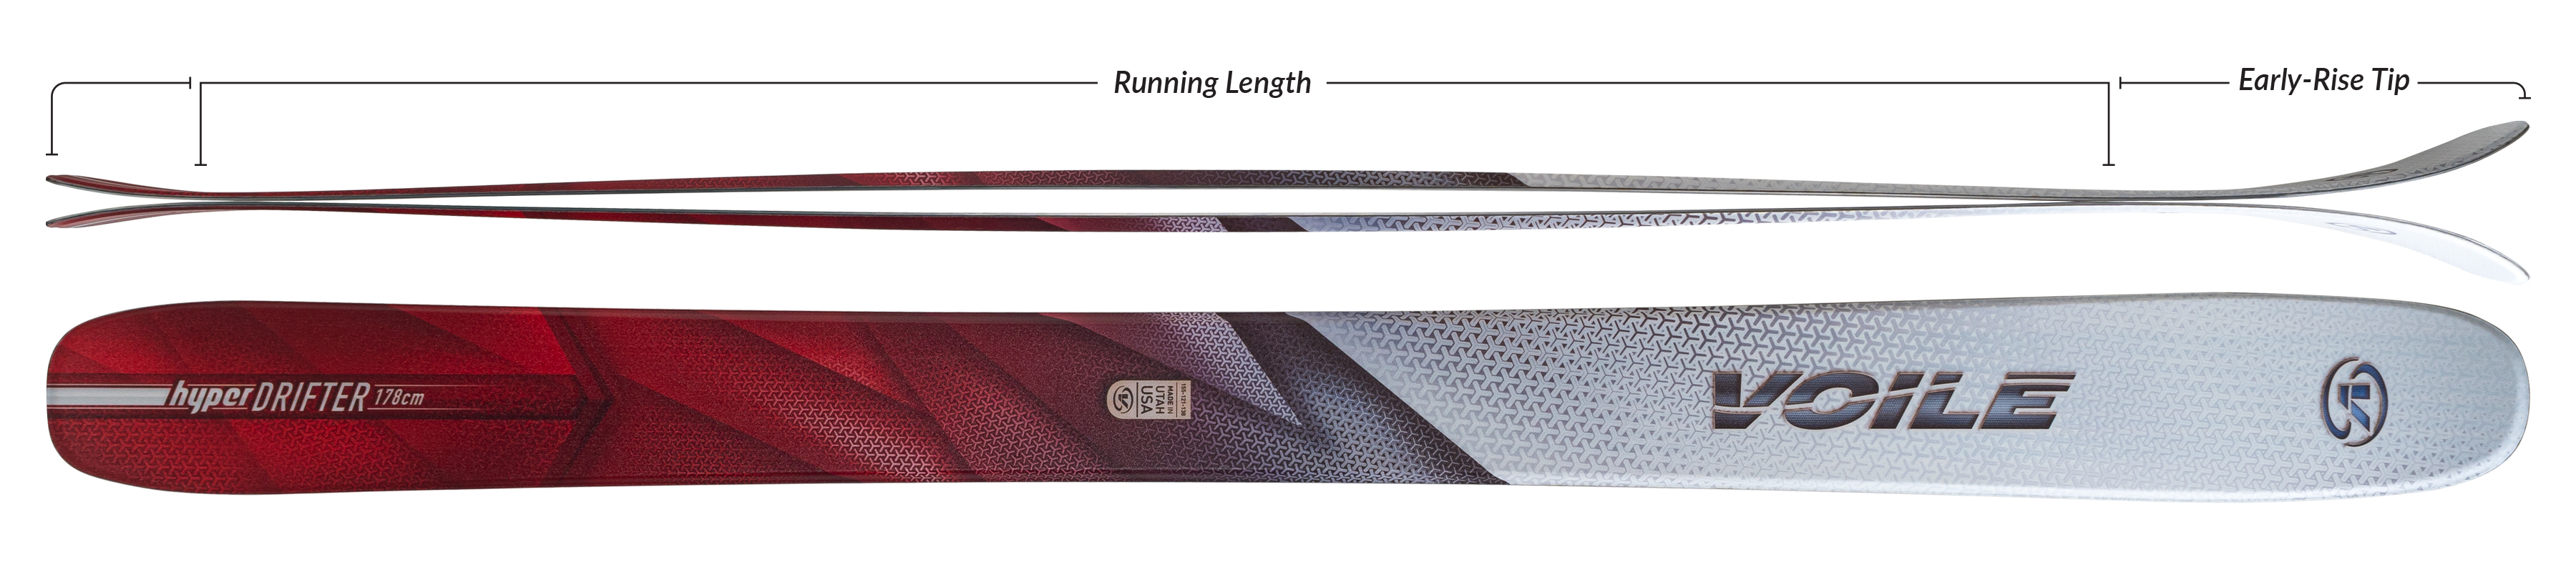 Voile HyperDrifter Skis Camber Profile